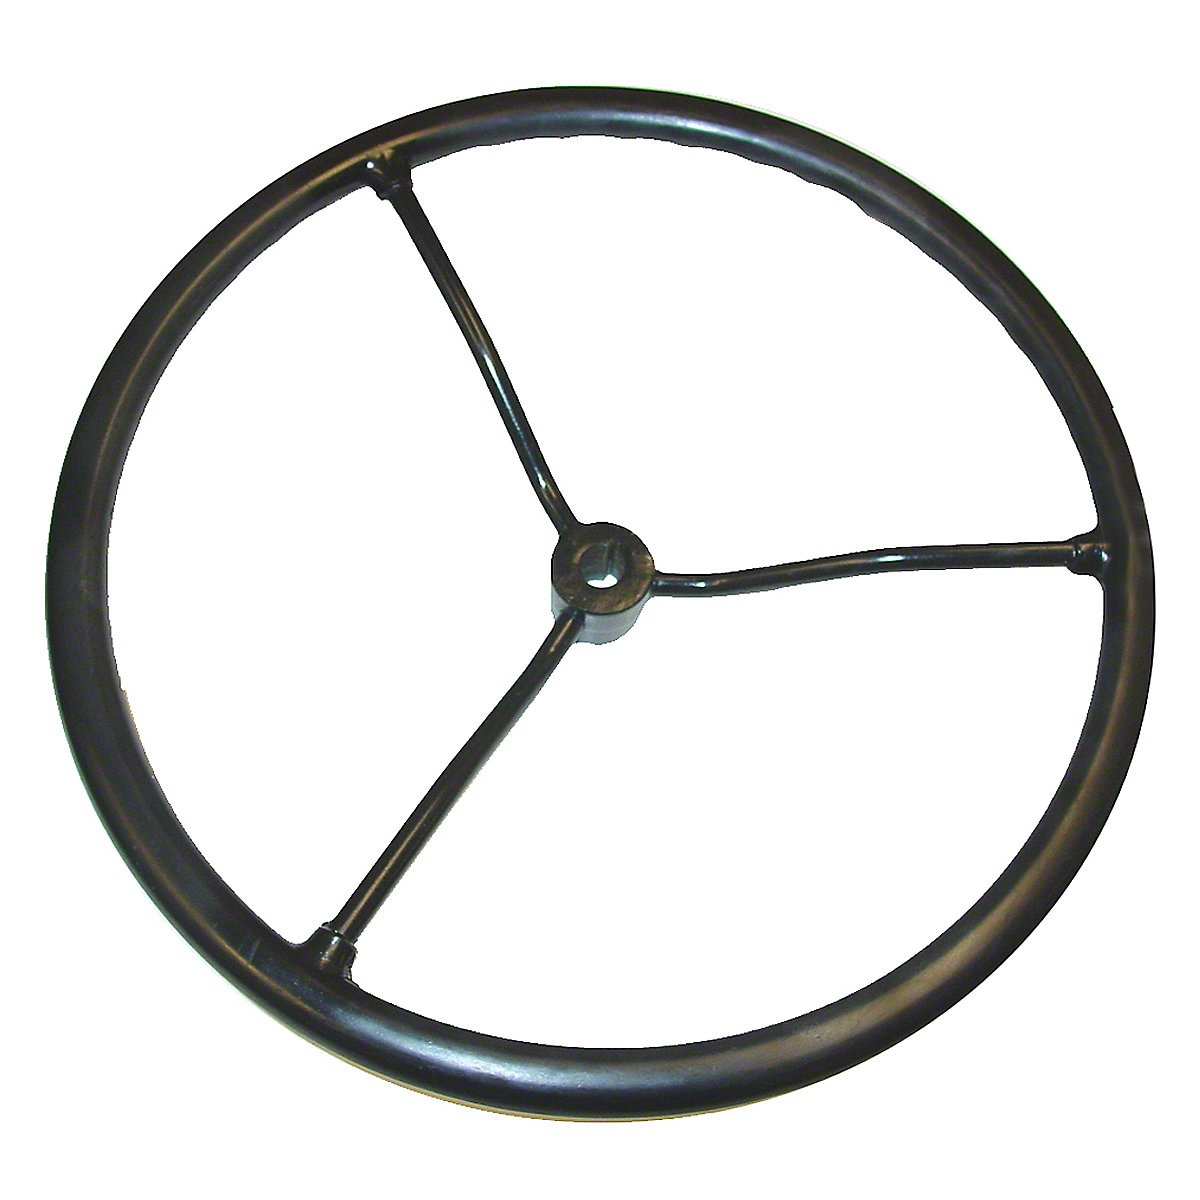 IHS328Tractor Steering Wheel fits Farmall H & M series & others